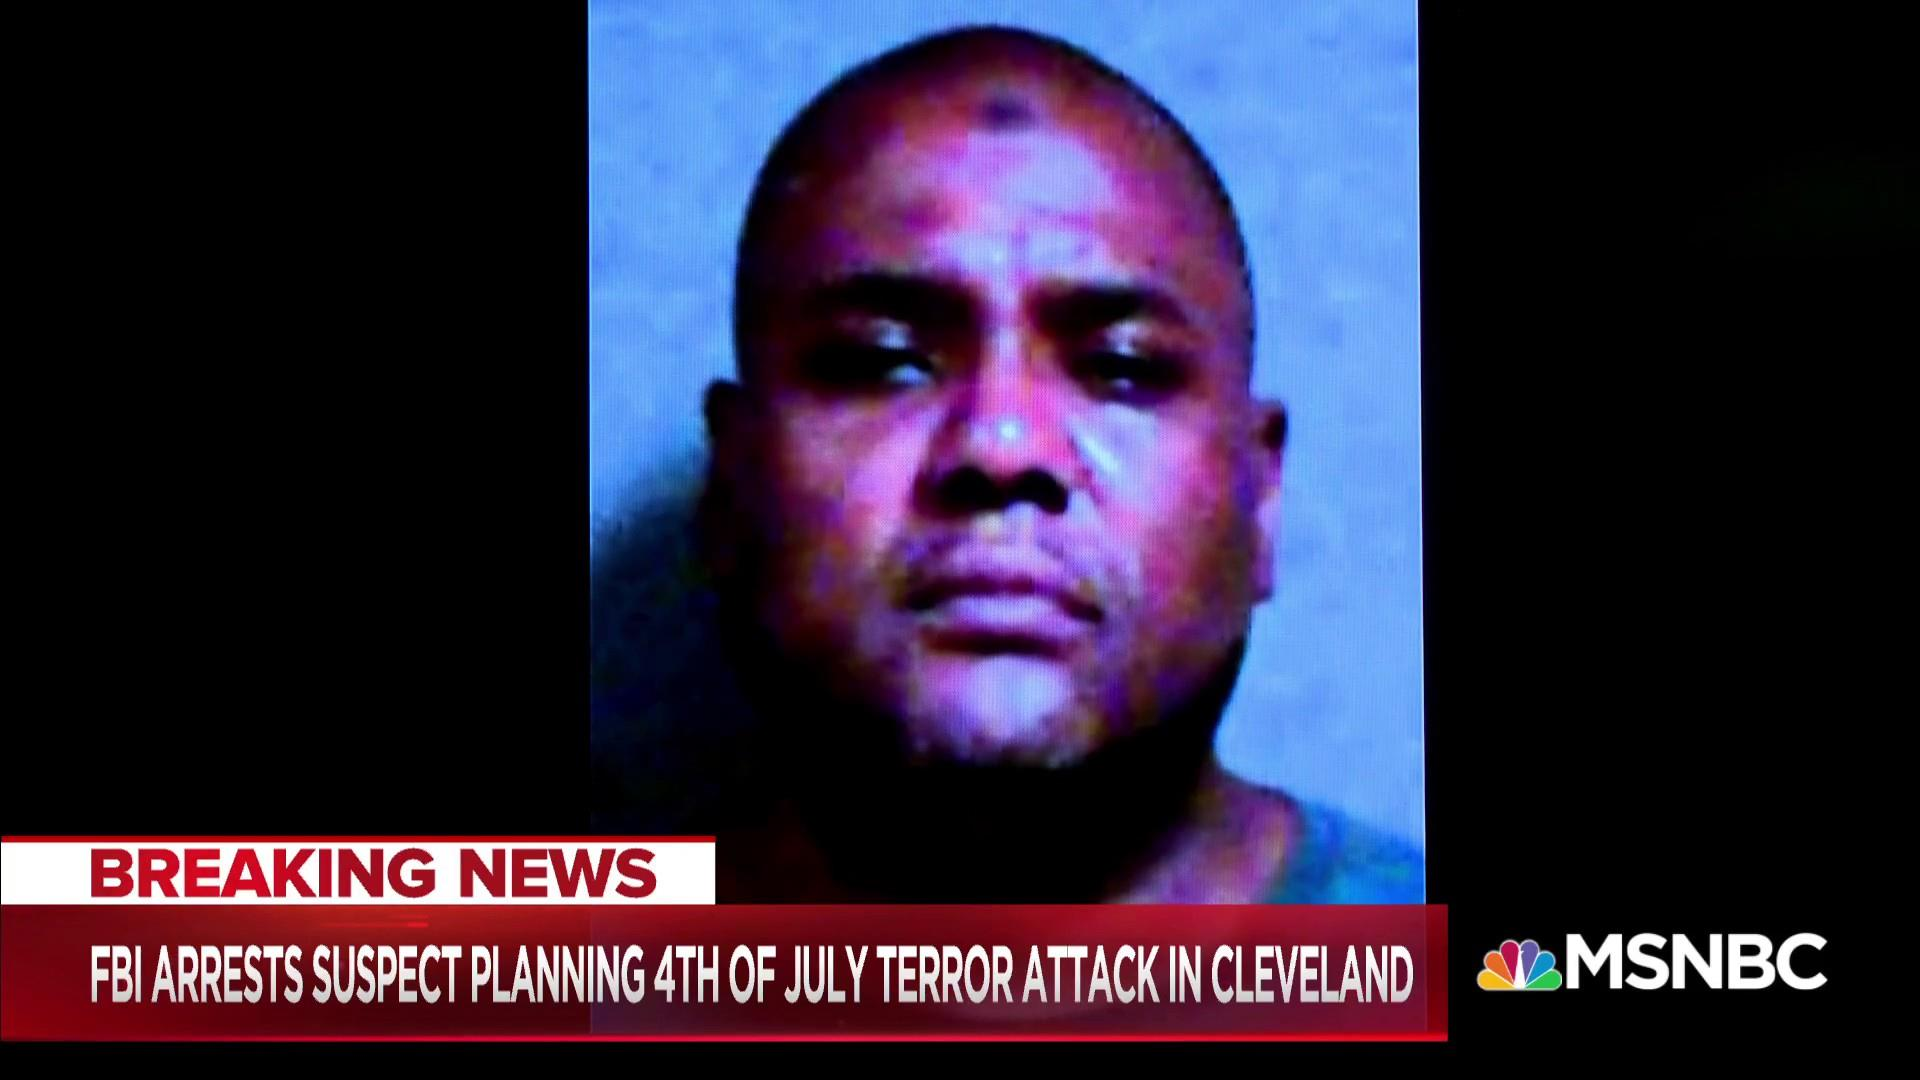 FBI: Arrest made in Cleveland in potential July 4th terror plot